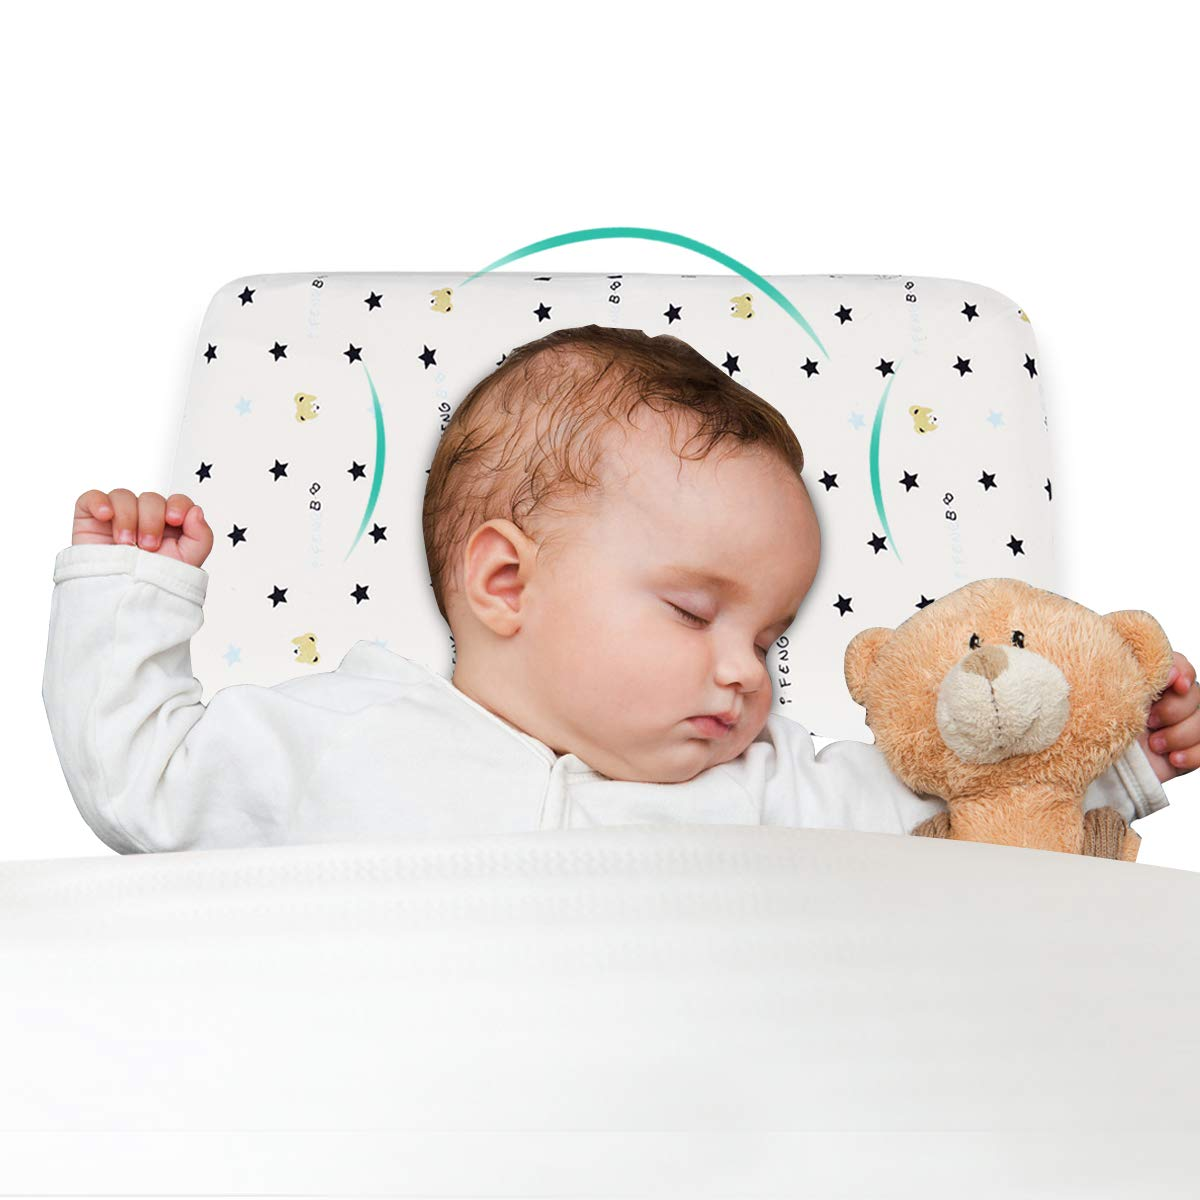 Baby Cot Memory Foam Pillow Sleeping Support Prevent Flat Head Cushion Toddler Pillow Prevention Colic Congestion And Anti Reflux Made Of Memory Foam Pink